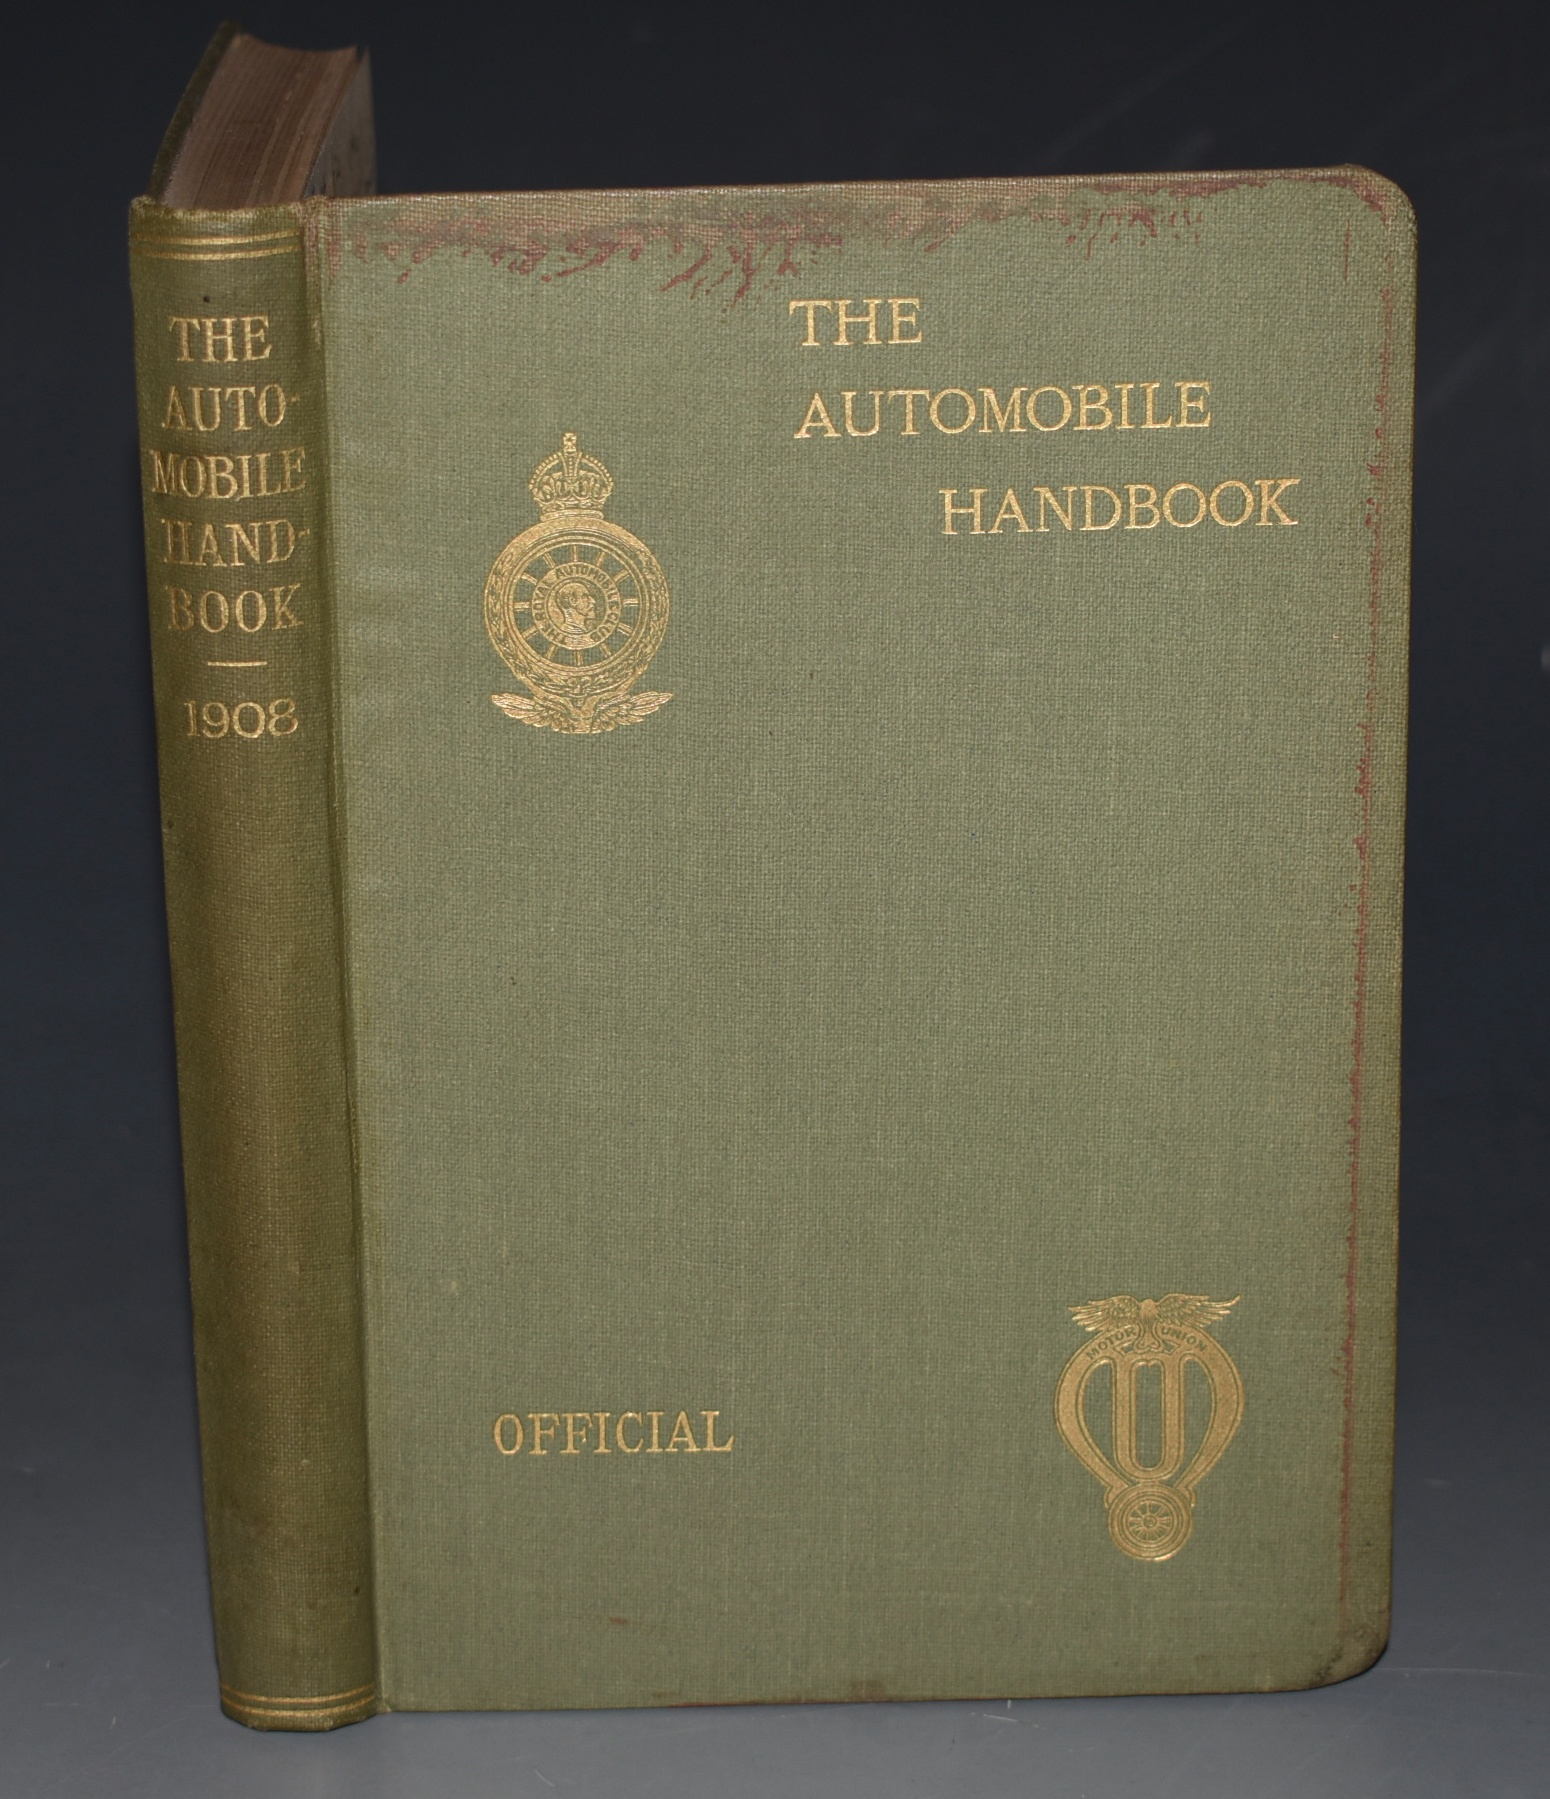 Image for The Automobile Handbook 1908 Issued under the Auspices and by the authority of the Royal Automobile Club and of the Motor Union of Great Britain and Ireland. Containing Information of Interest to Automobilists and a Guide to Touring in the United Kingdom and Places Abroad. (Fifth Year of Issue.)